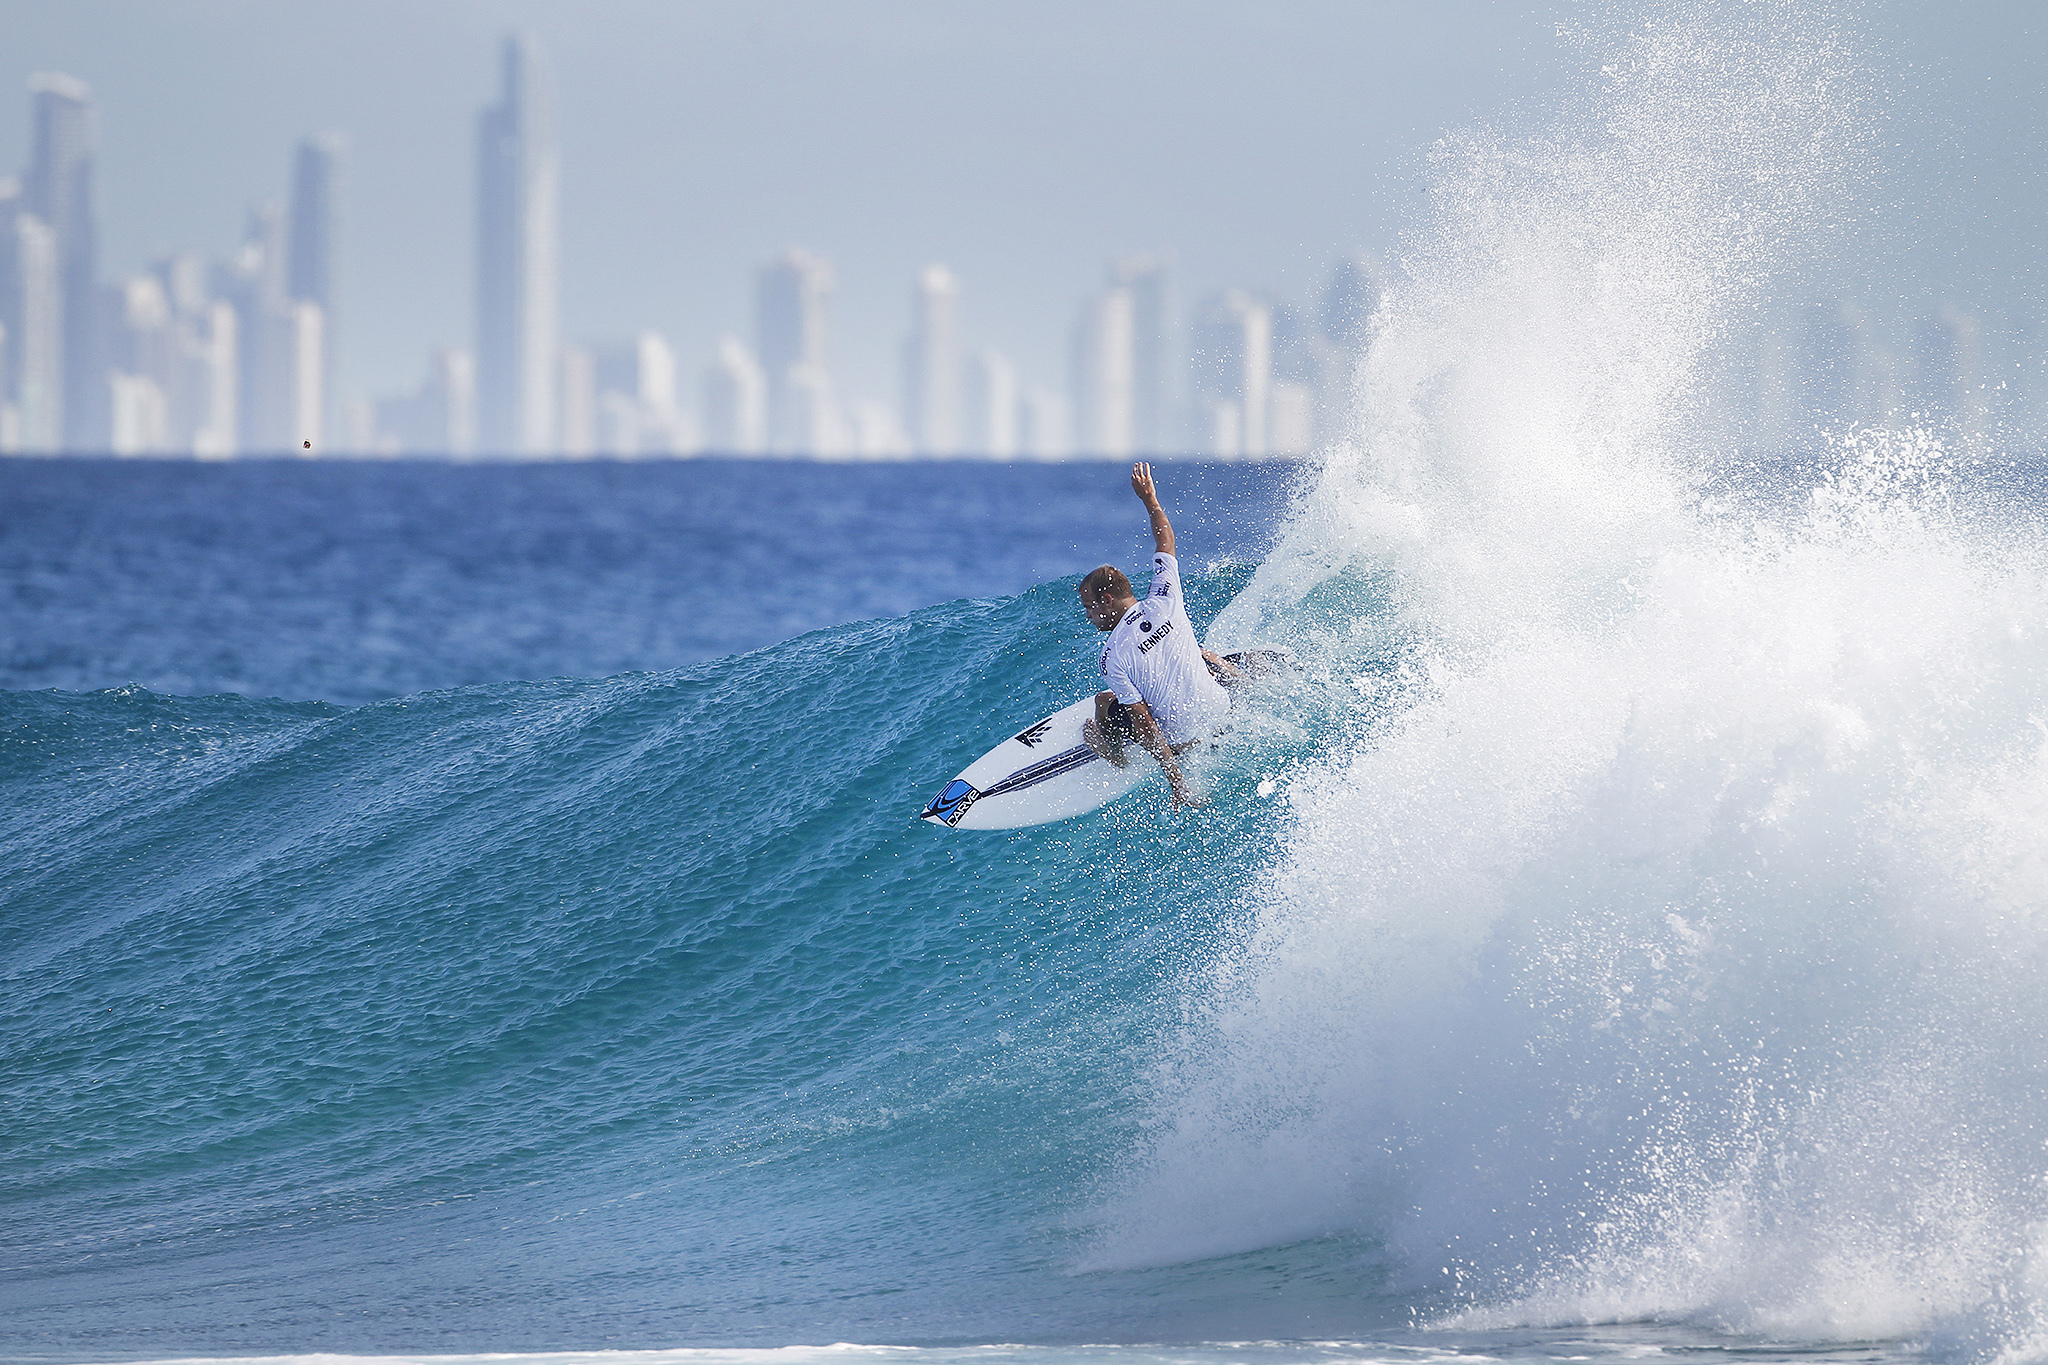 Stu Kennedy of Australia (pictured) winning his Round 5 heat to advance into the Quarterfinals of the Quiksilver Pro Gold Coast on Tuesday March 15, 2016. PHOTO: © WSL/ Kirstin SOCIAL MEDIA: @kirstinscholtz @wsl This is a hand-out image from the World Surf League and is royalty free for editorial use only, no commercial rights granted. The copyright is owned by World Surf League. Sale or license of the images is prohibited. ALL RIGHTS RESERVED.